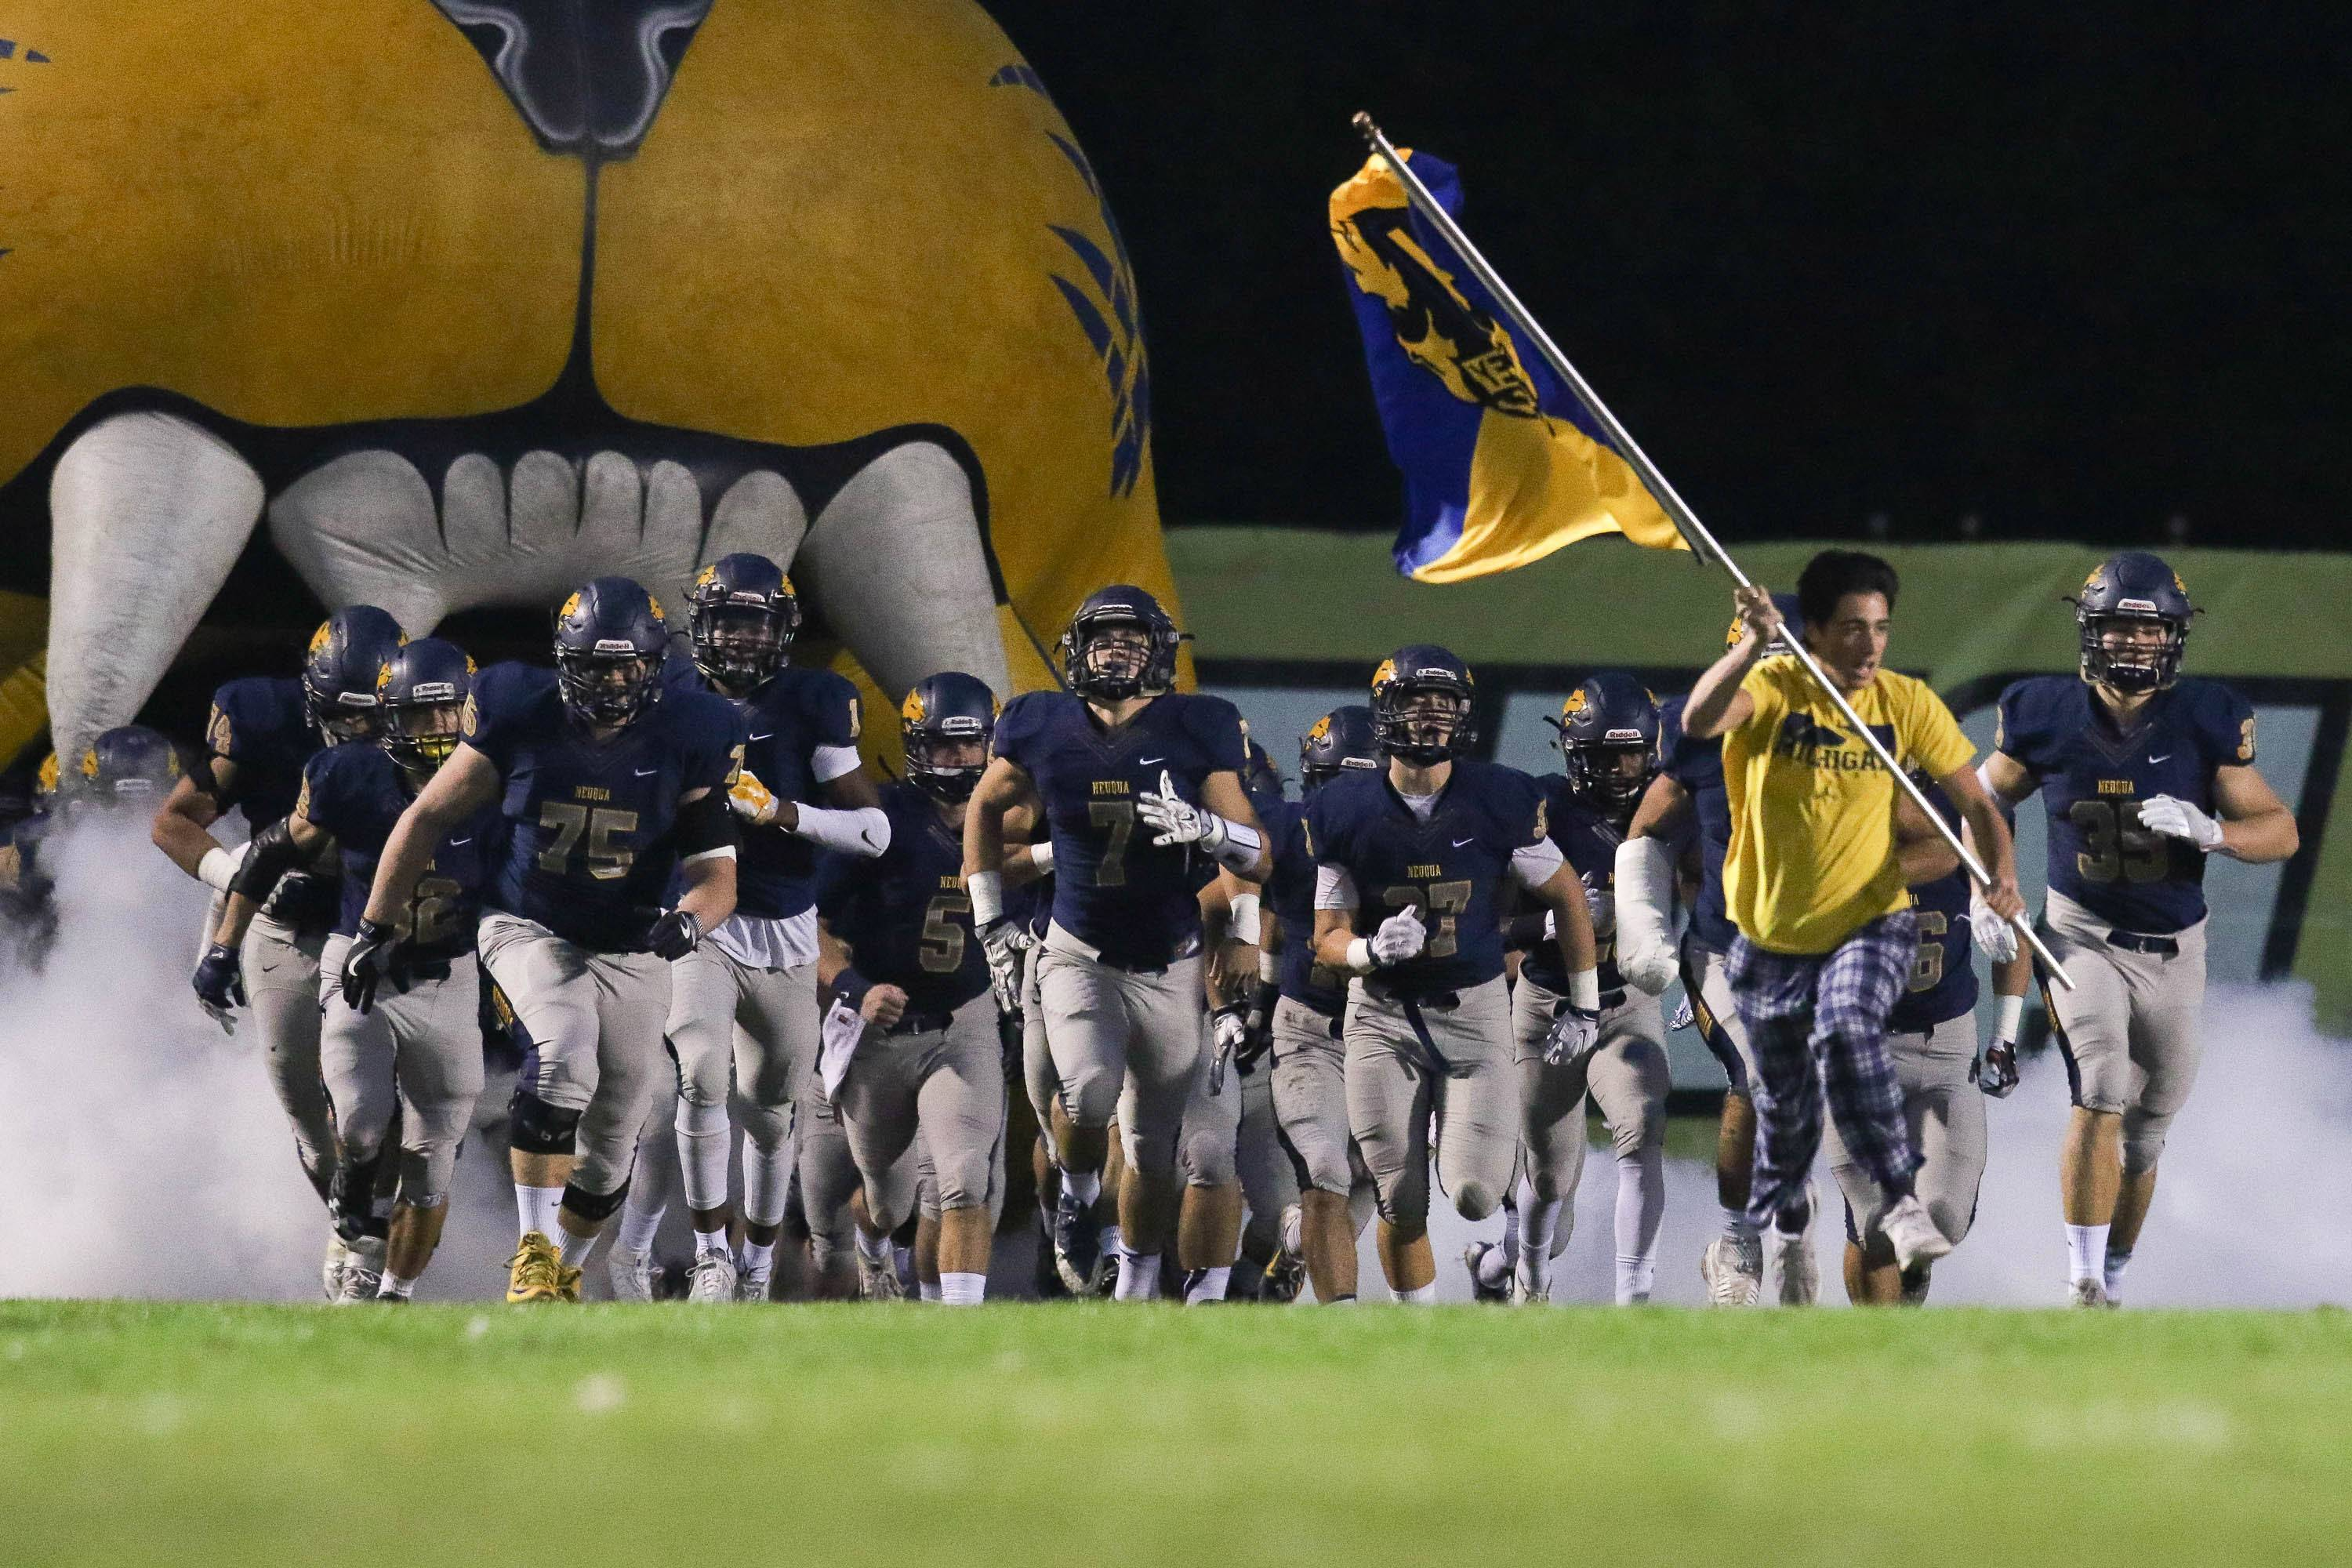 Neuqua Valley takes the field prior to kick off against Glenbard West at Neuqua Valley High School in Naperville, IL on Saturday, October 29, 2016